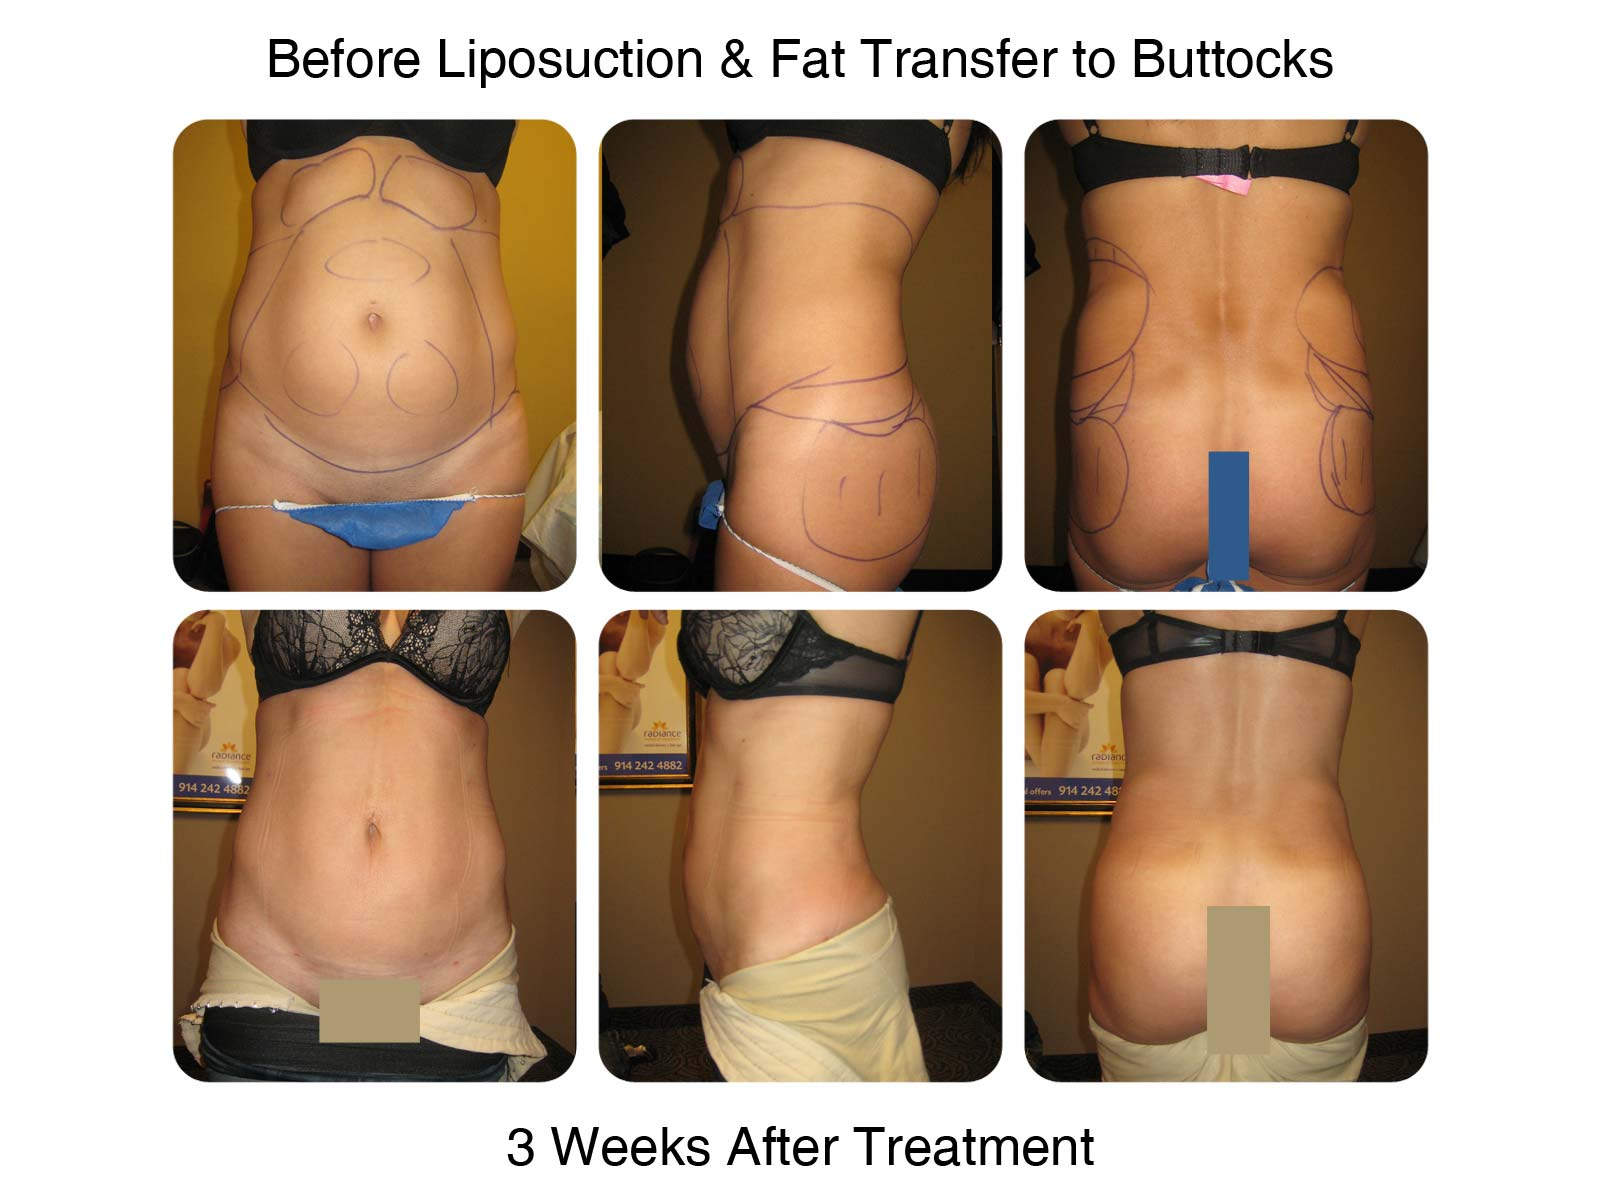 Brazilian Butt Lift Fat Transfer Before and After 3